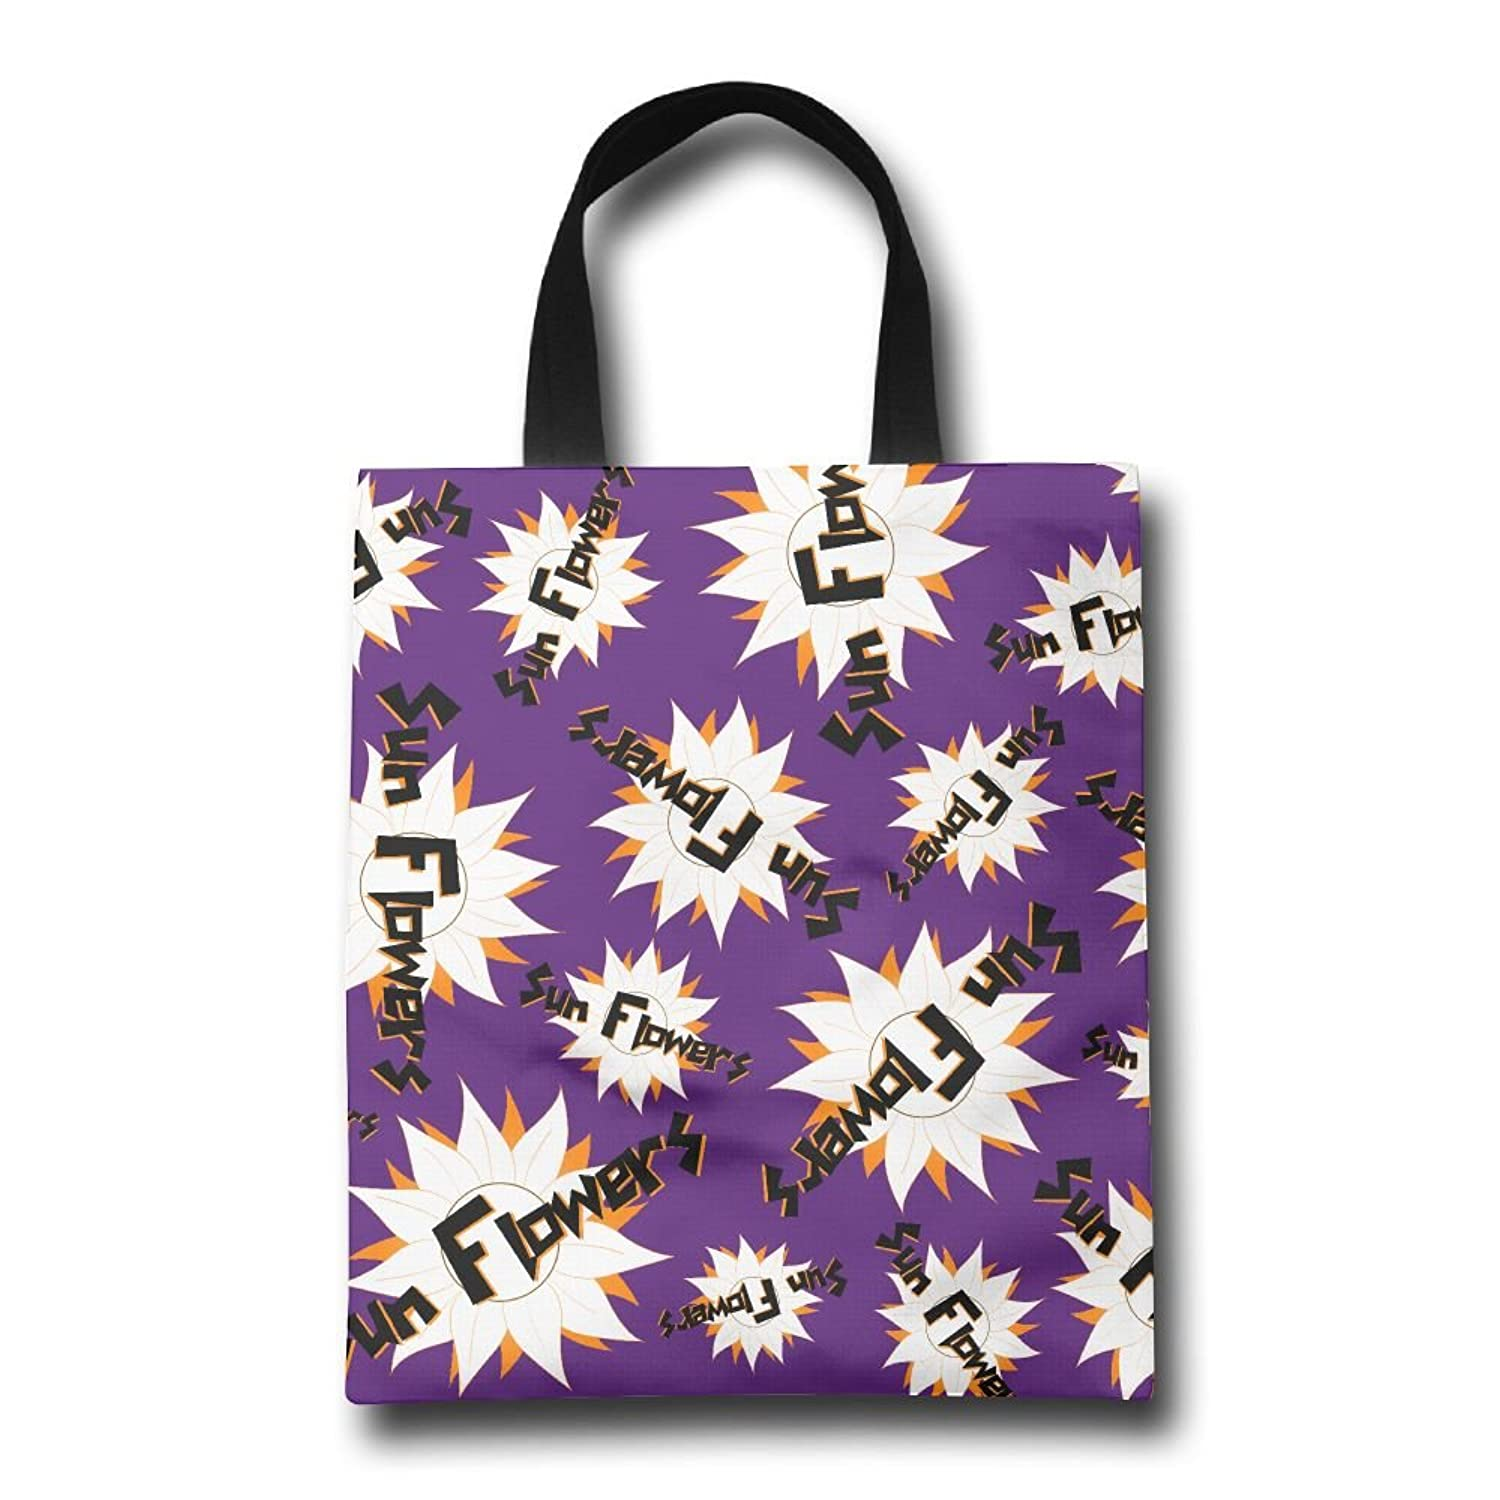 Sun Flowers Shopping Bags Heavy Year Reusable Grocery Tote Shopping Bag